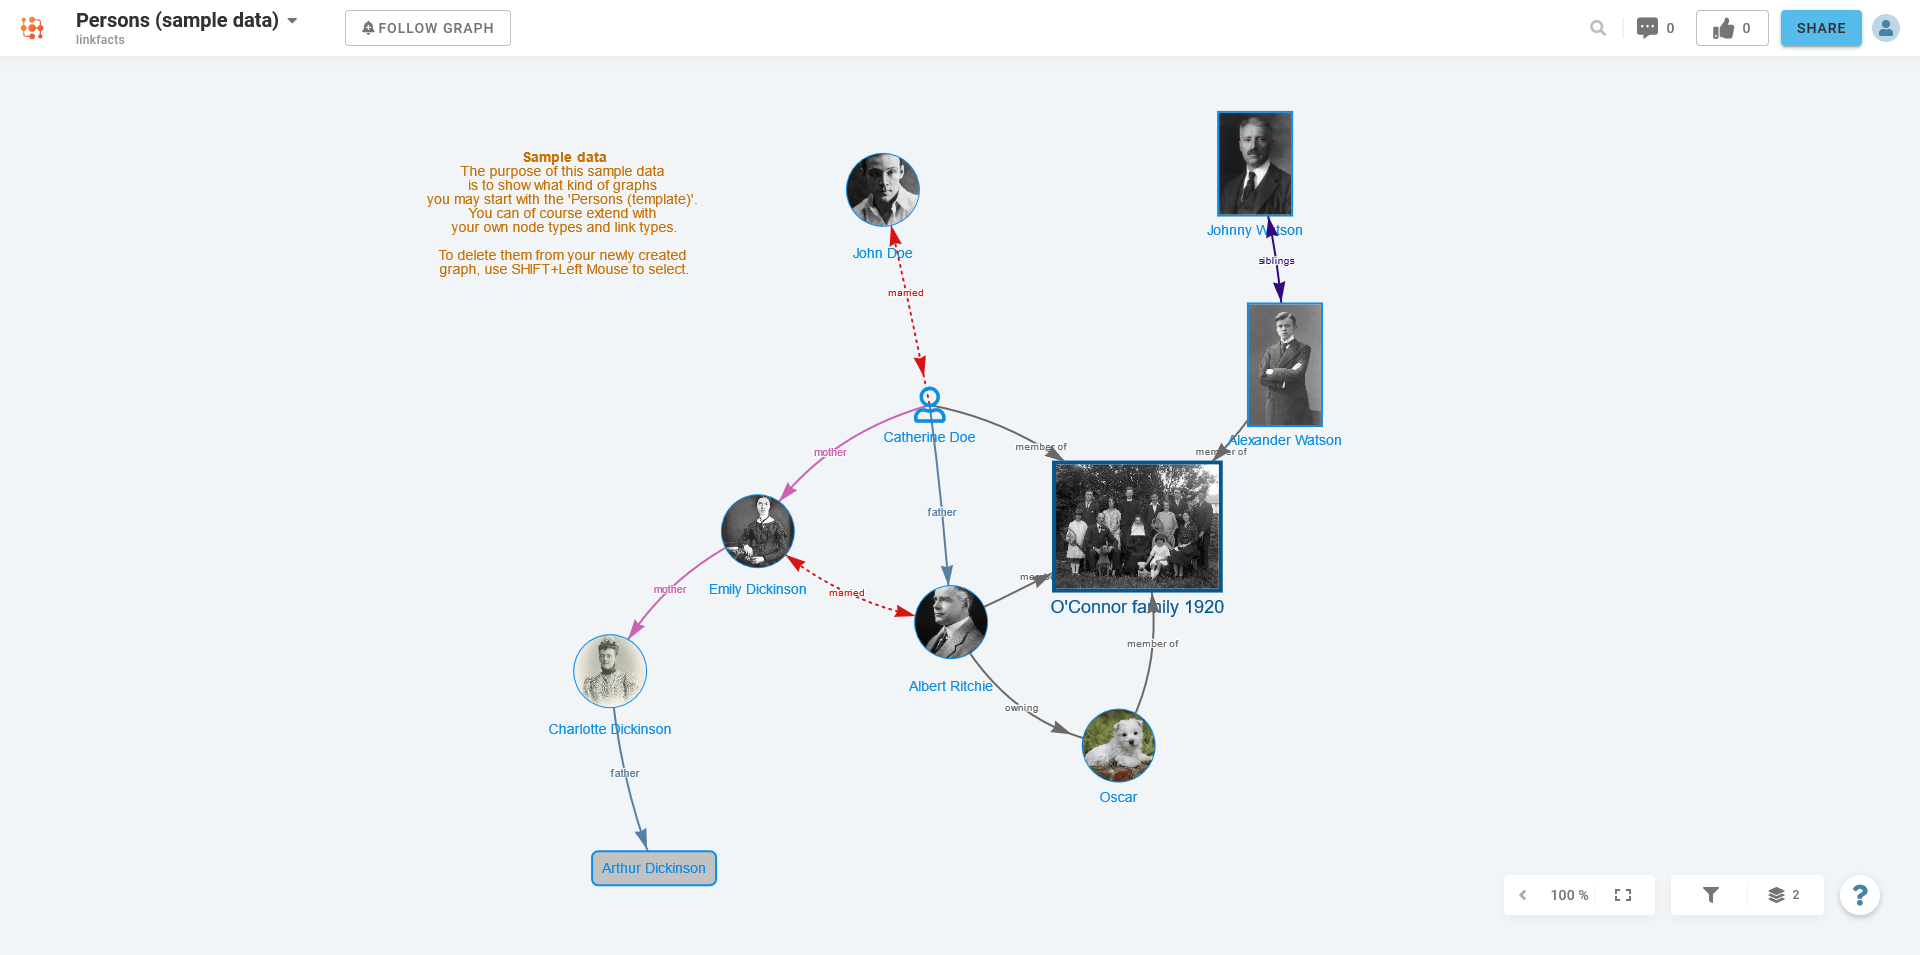 Family tree concept map